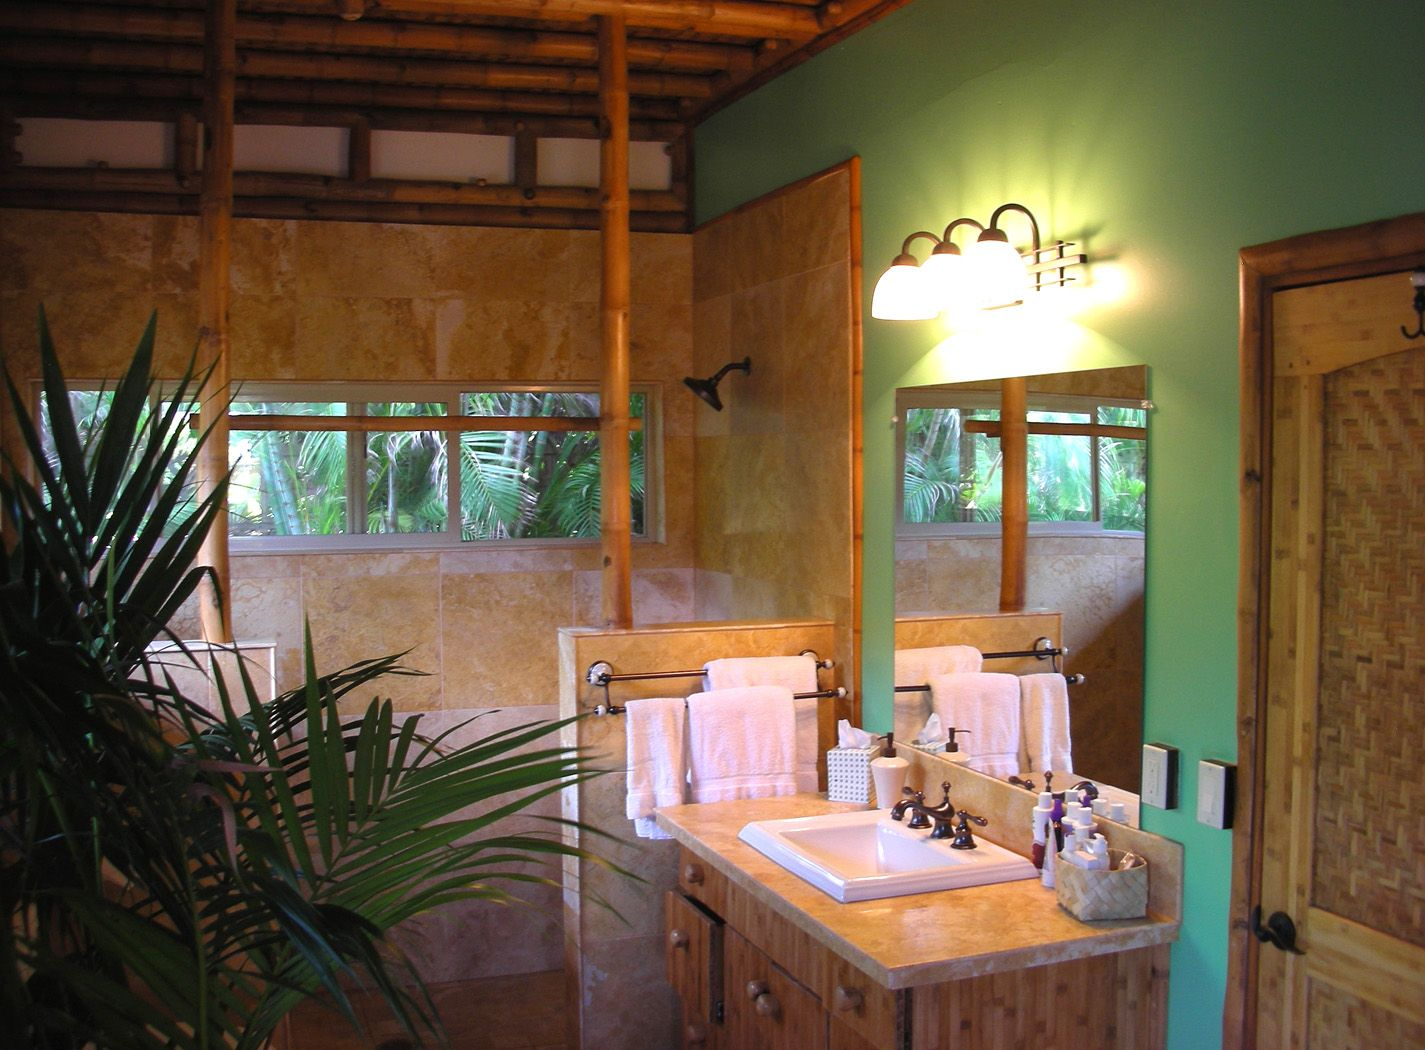 Bamboo furniture bathroom with modern sink and exotic flower